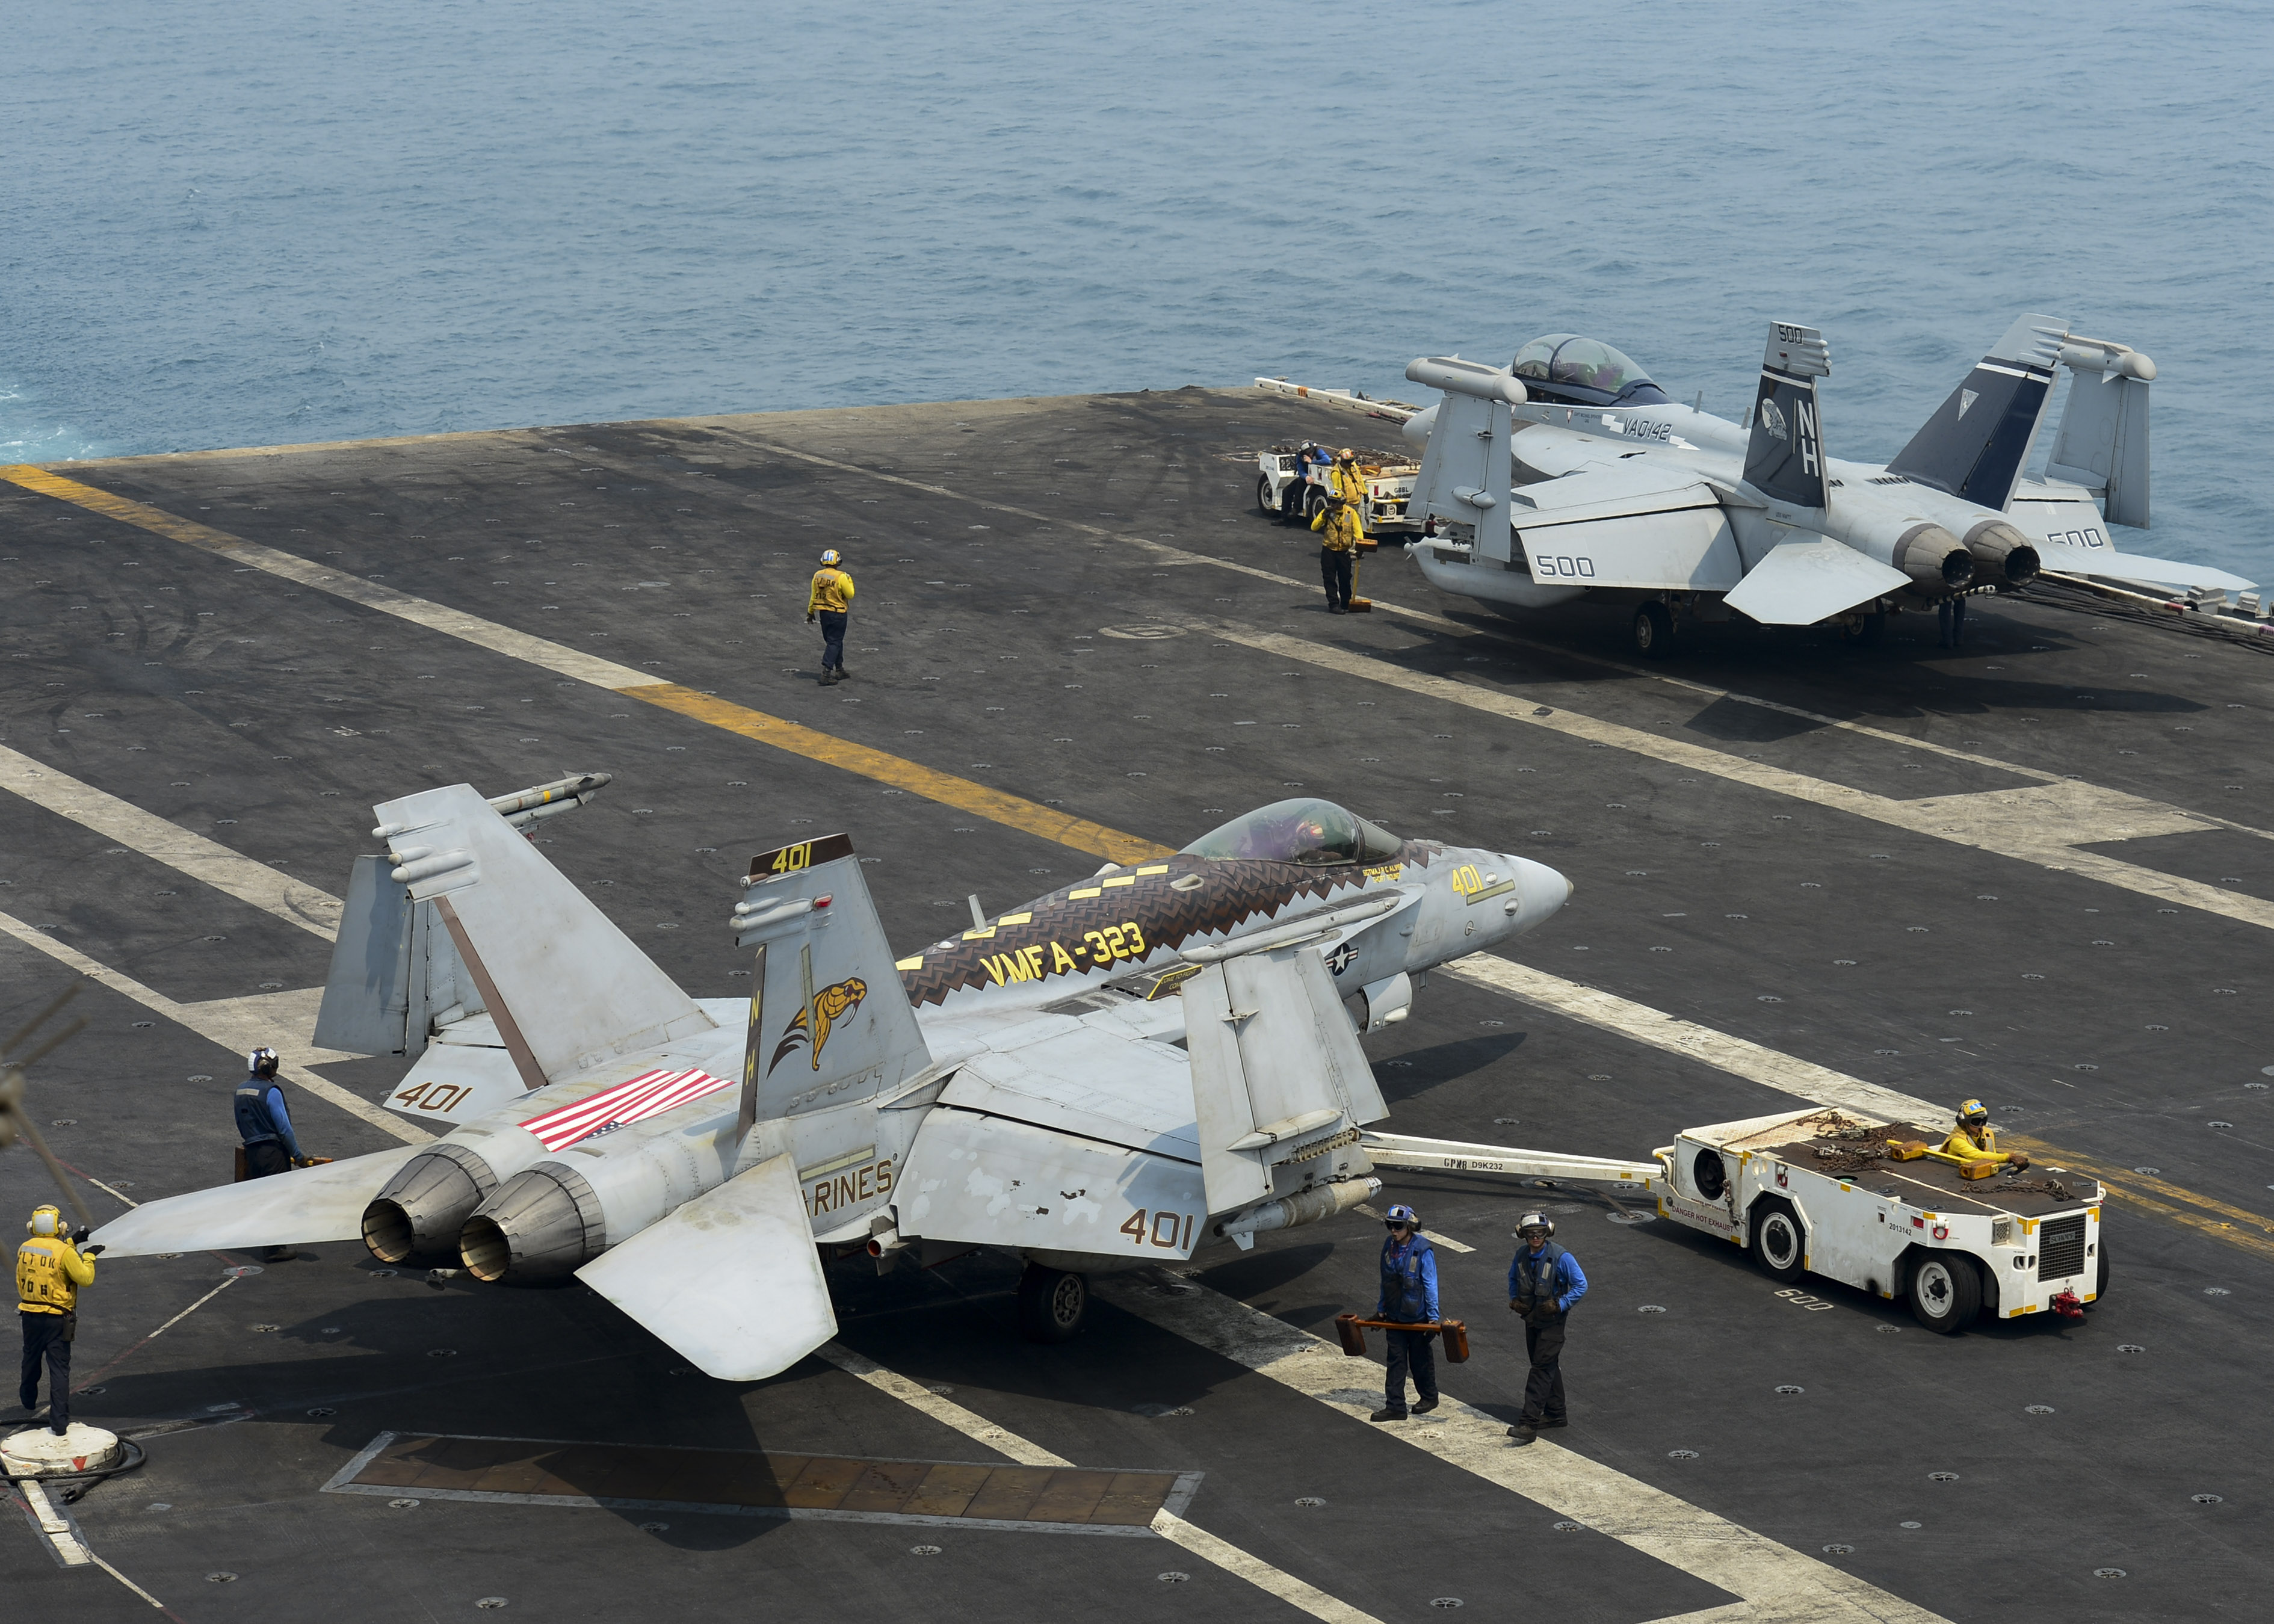 FA-18C_of_VMFA-323_and_EA-18G_of_VAQ-142_aboard_USS_Nimitz_(CVN-68)_on_21_August_2017_(170821-N-UD618-037).JPG